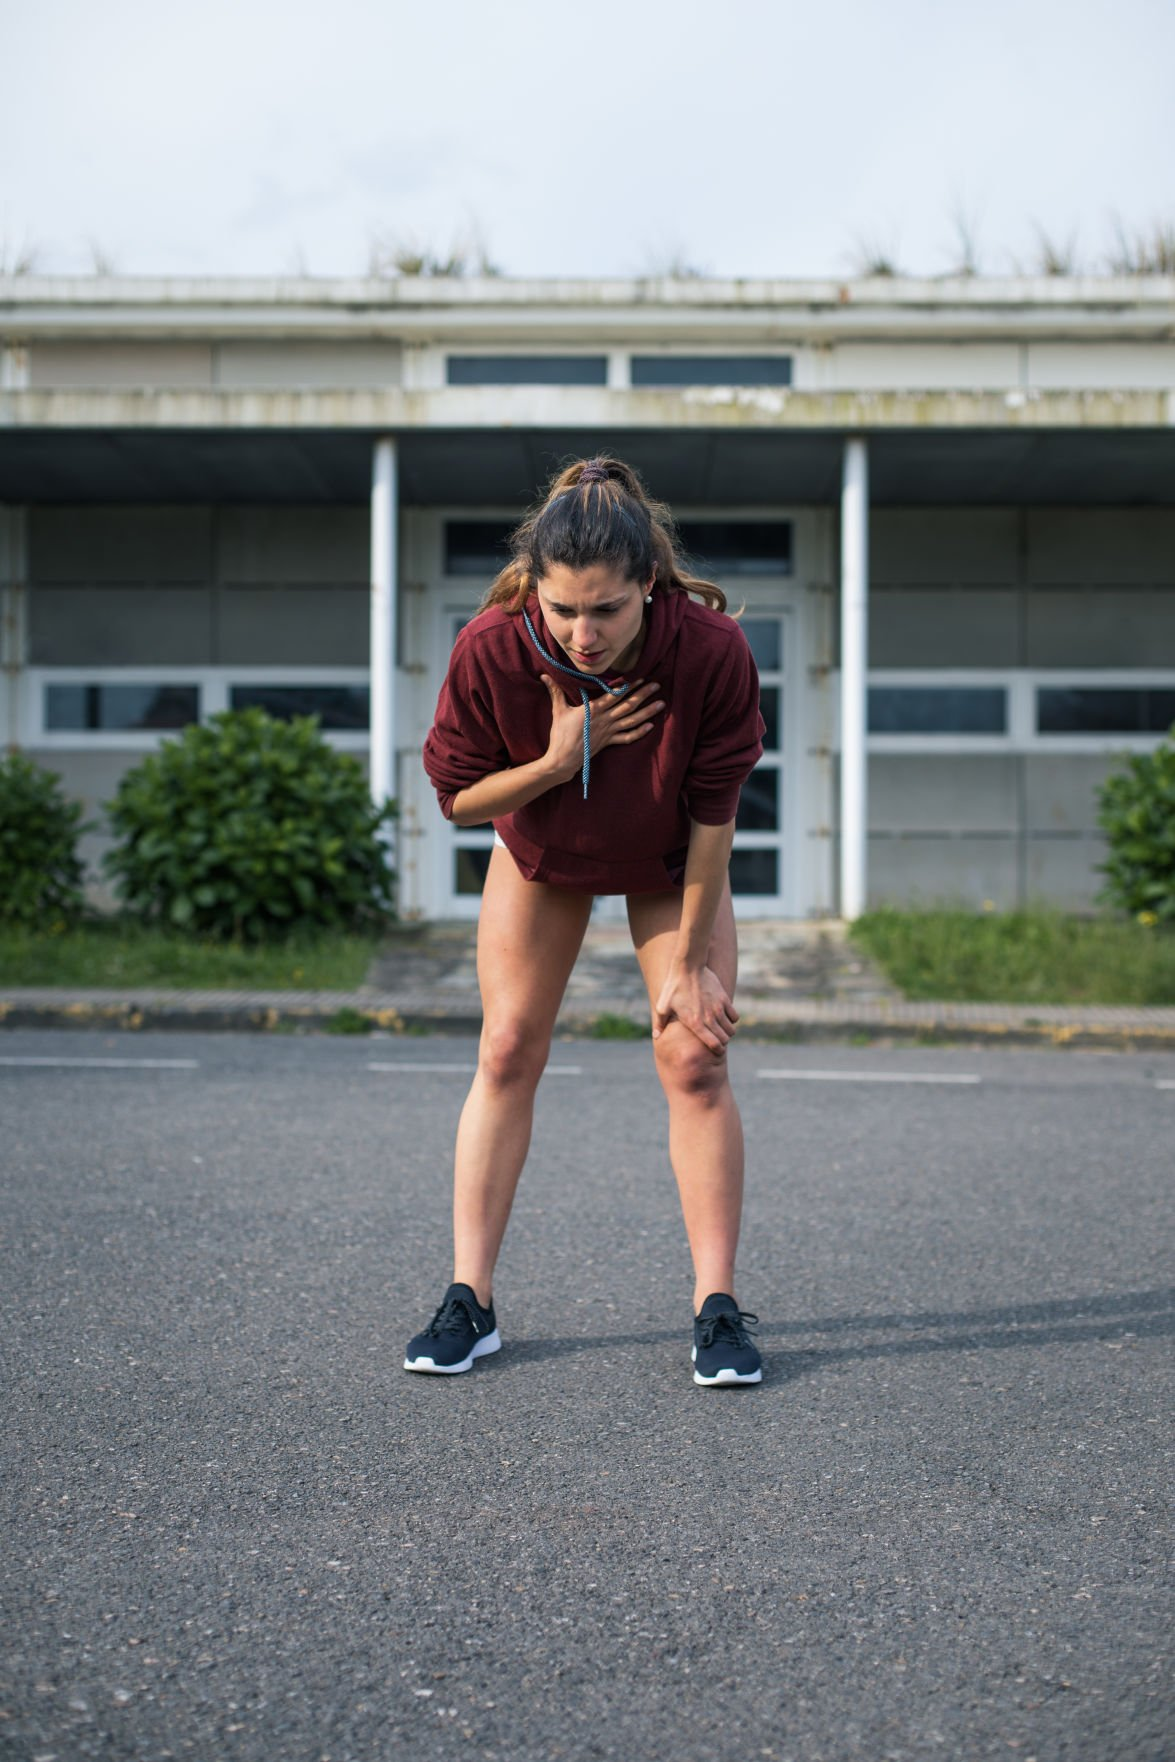 Female athlete suffering asthma attack during running training